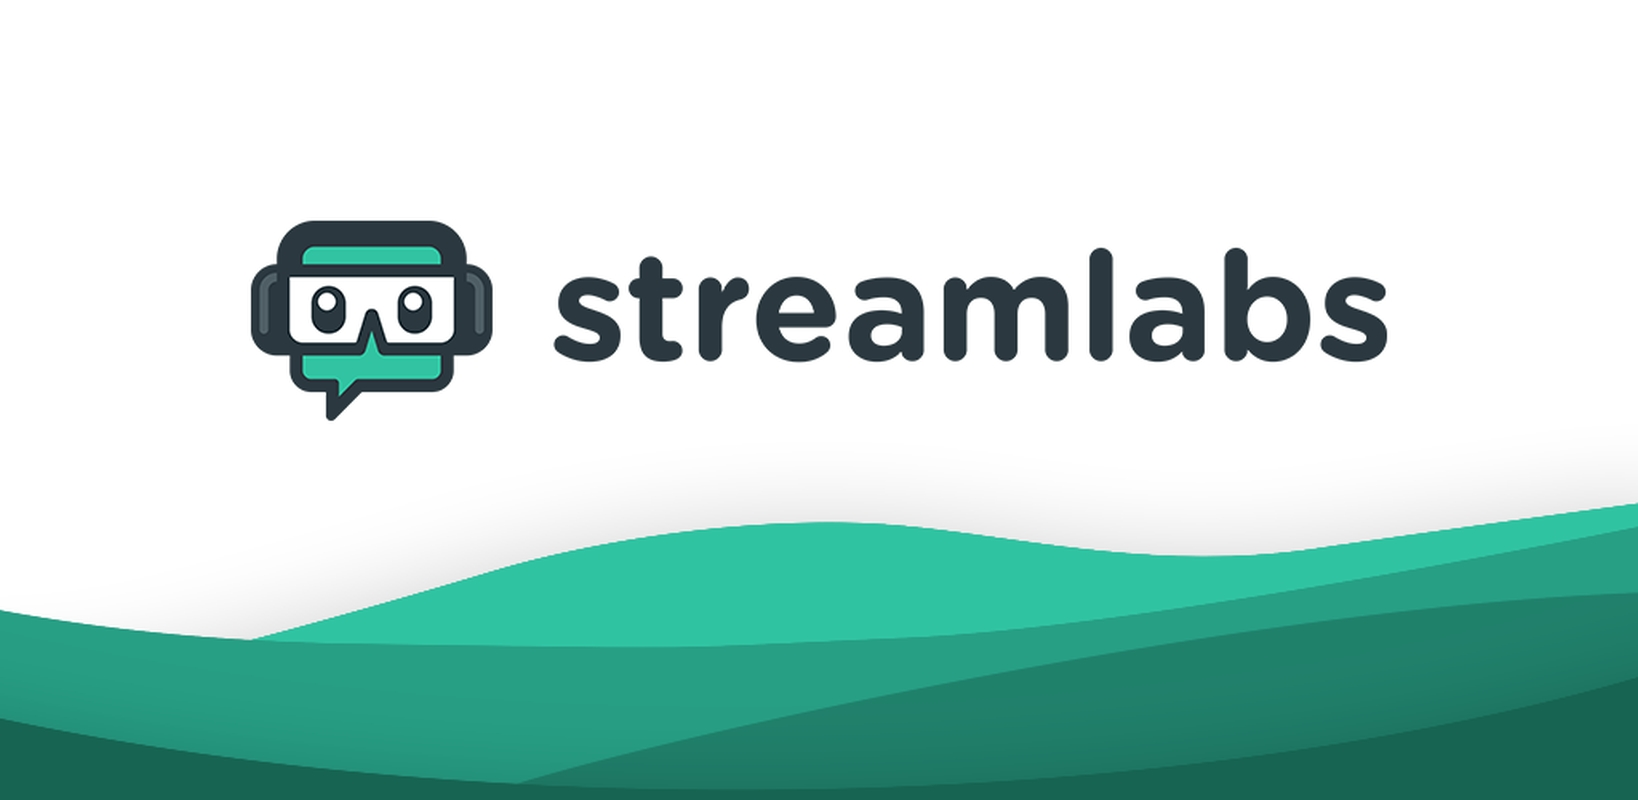 Streamlabs Announces New Platform To Help Streamers Raise Money For Charities